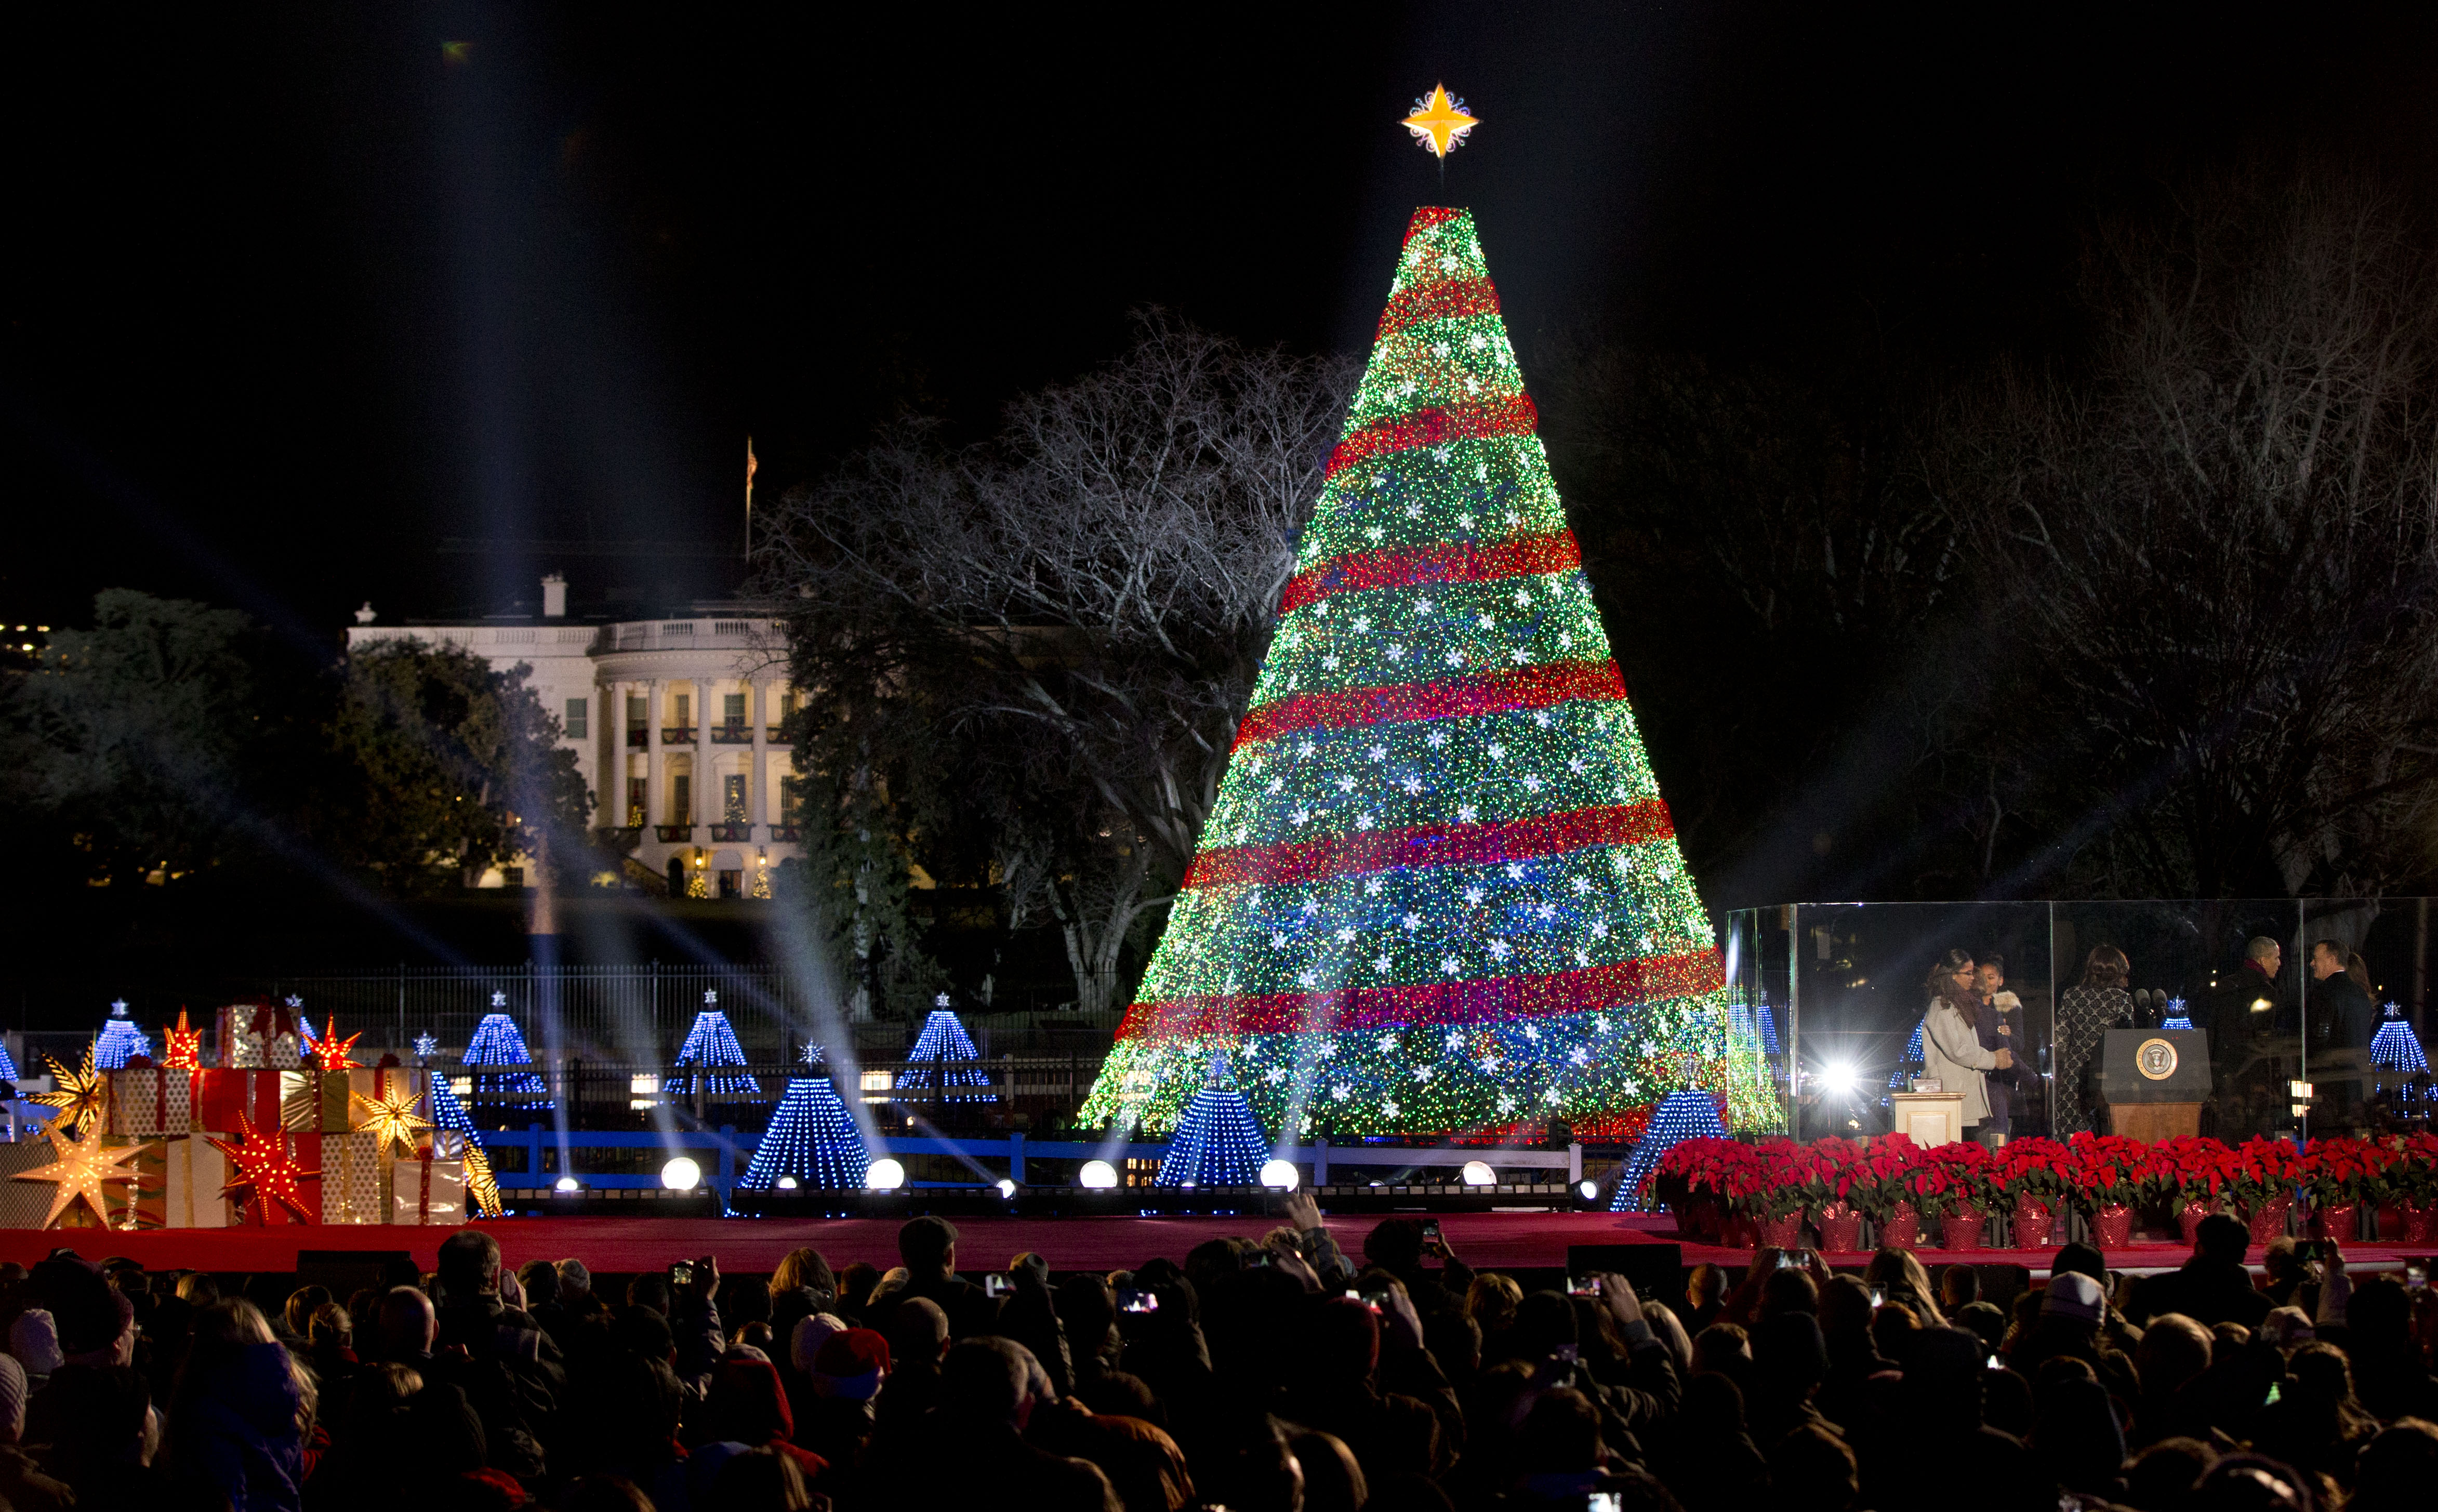 White House Christmas Tree Lighting Road Closures Road Closures Announced For Christmas Tree Lighting | Wtop